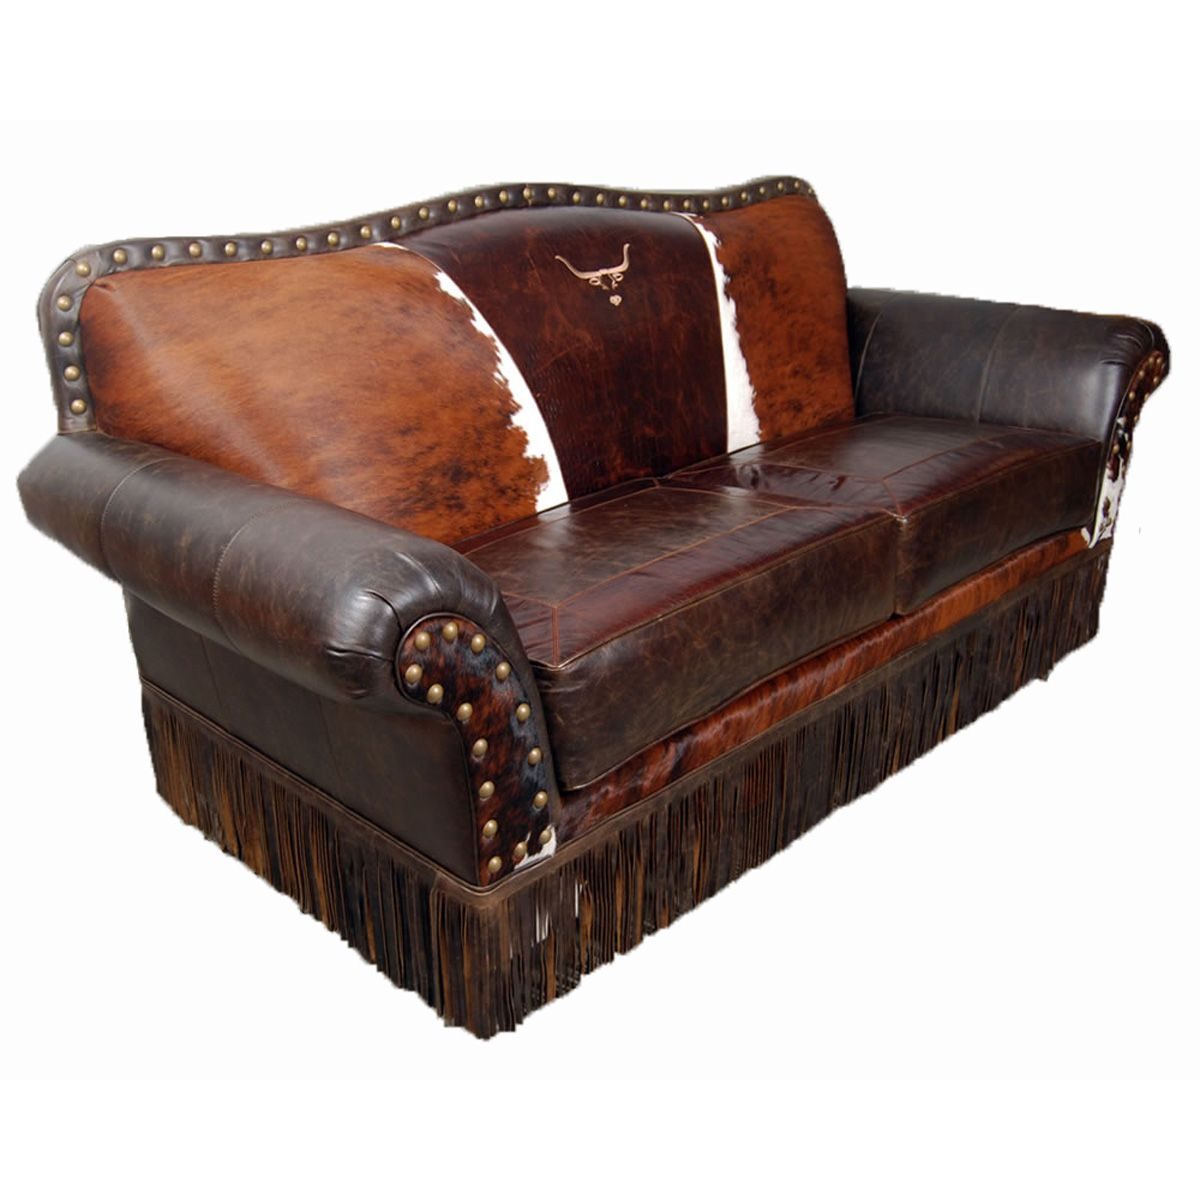 Cattle Baron Sofa